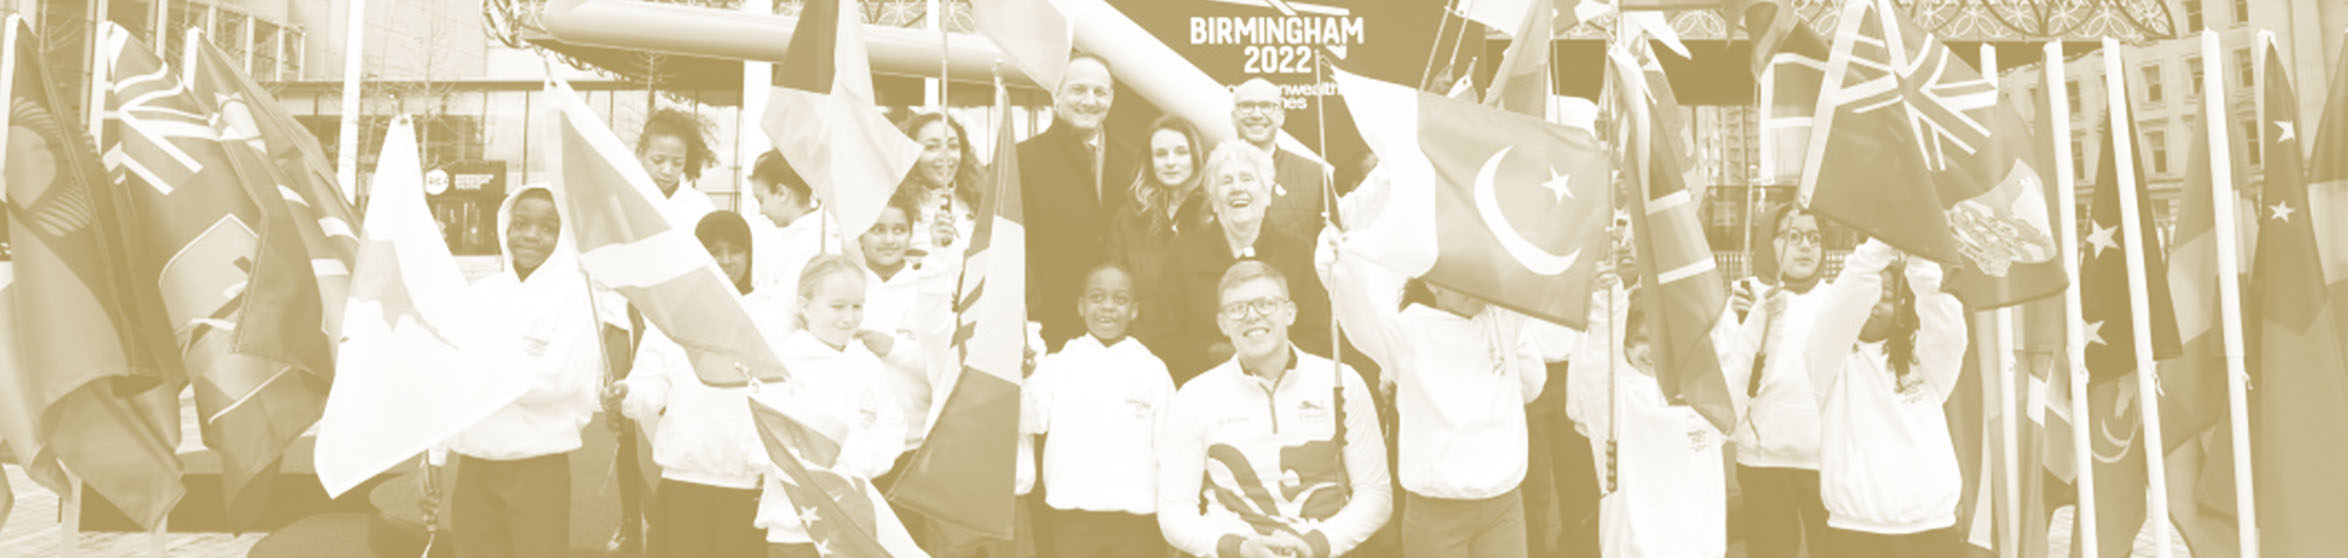 Birmingham Commonwealth Games